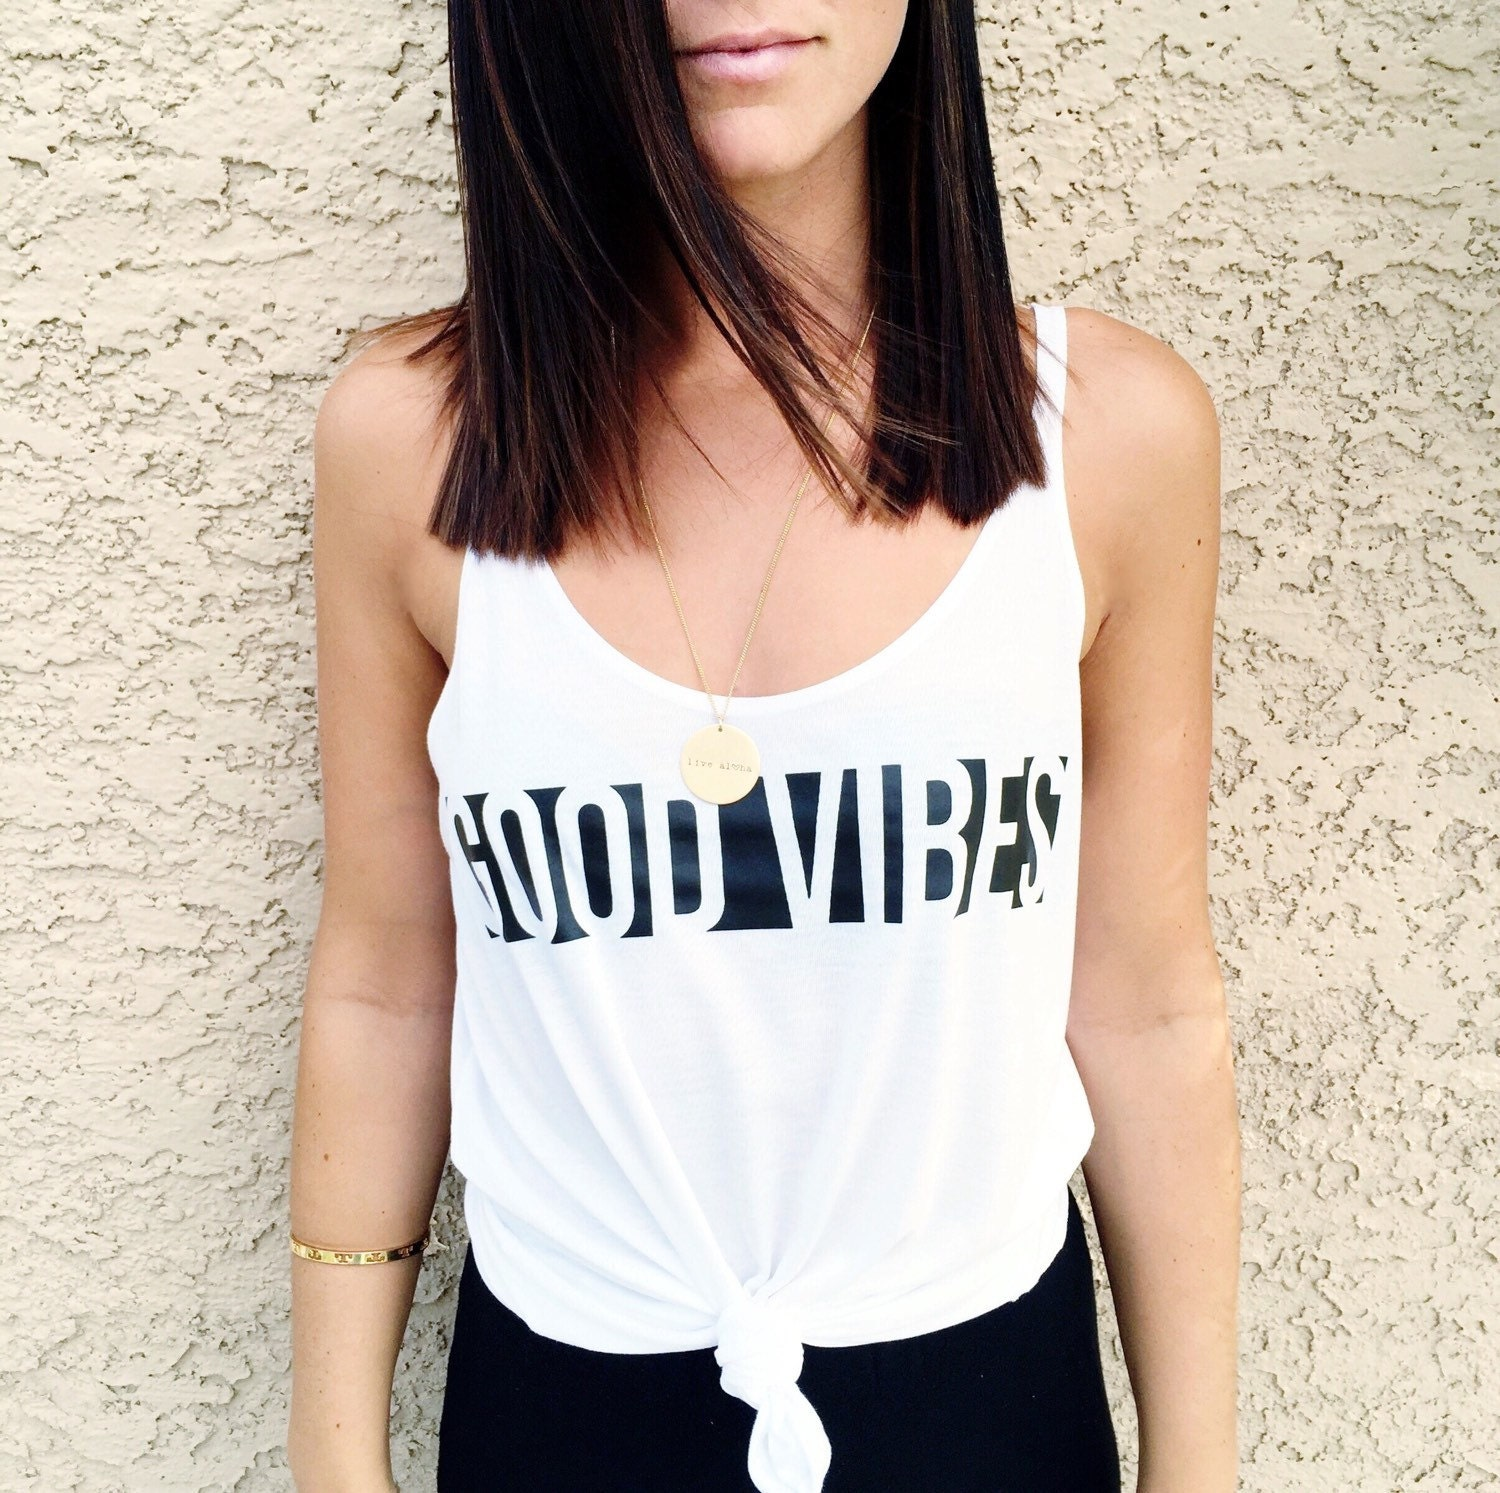 GOOD VIBES // Black & White Tank Top Yoga Tunic Brunch Top